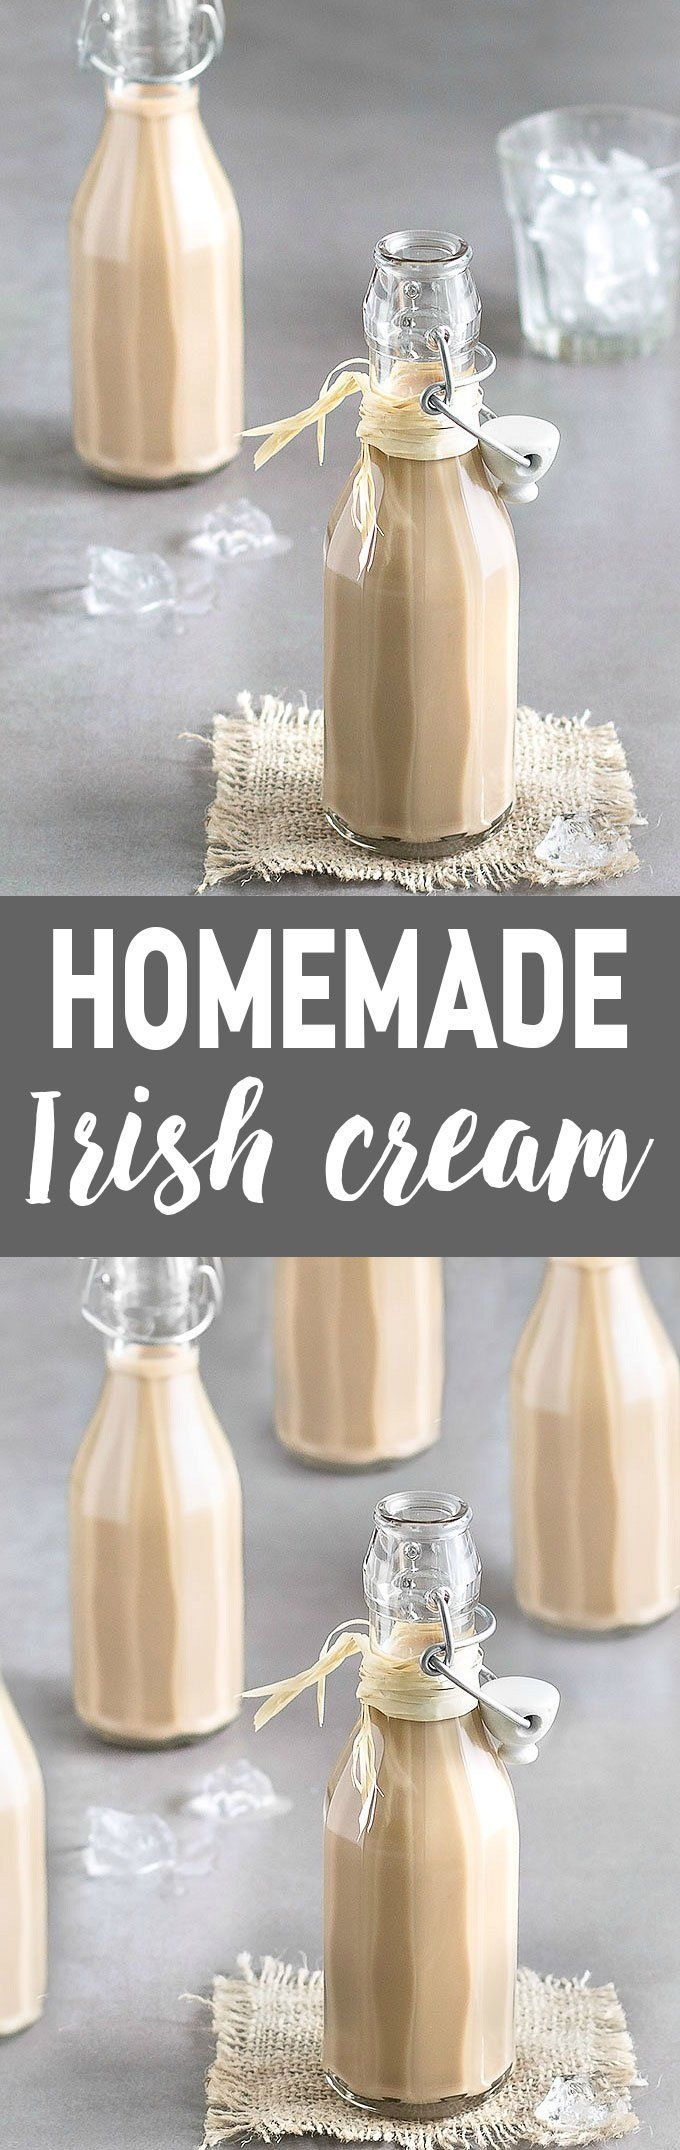 Learn how to make homemade Baileys Irish Cream with this quick and simple recipe. It's rich, creamy and velvety smooth! #baileys #irishcream #stpatrick #homemade #easyrecipe #diyfoodgift #drink | aseasyasapplepie.com